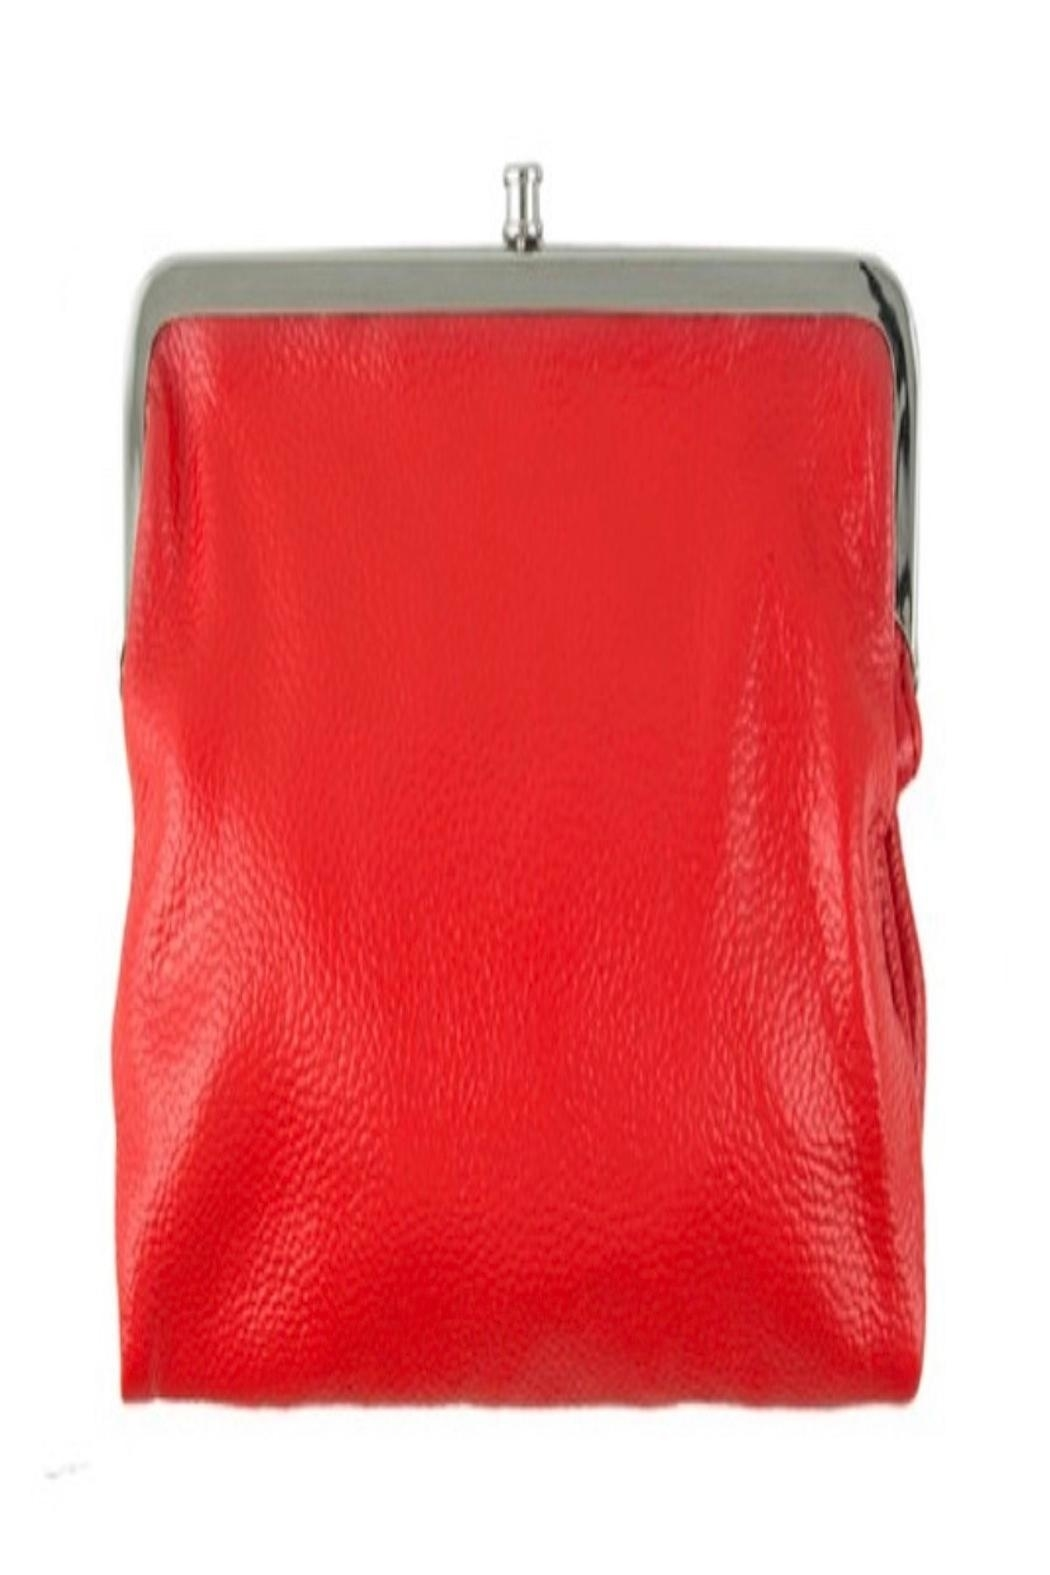 ICCO Red Leather Clutch - Main Image